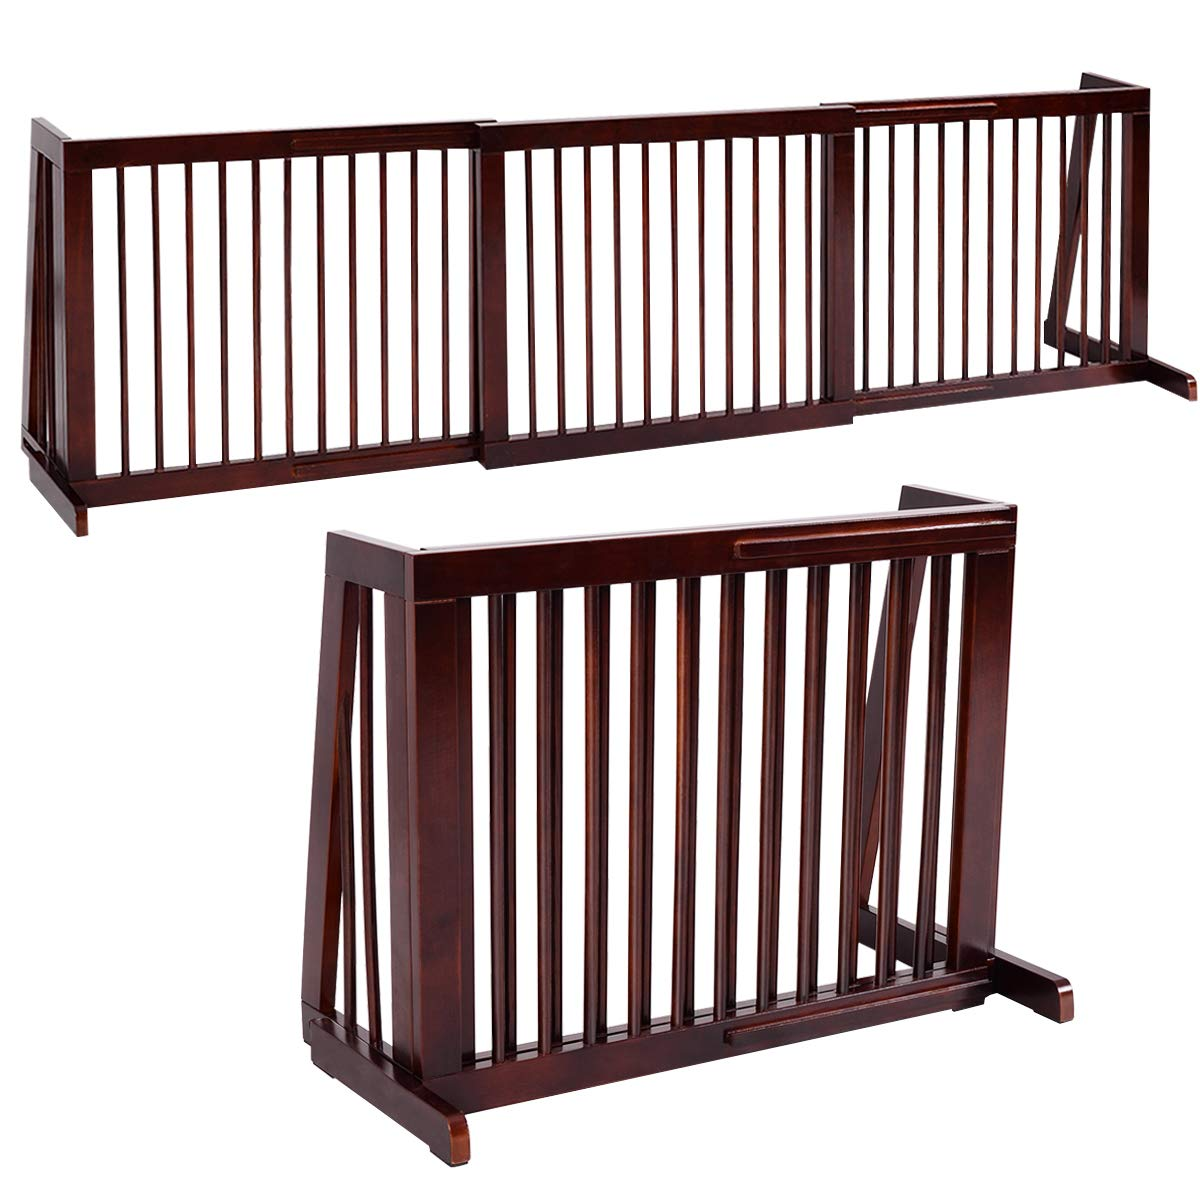 Freestanding Stair Pet Barrier Tall Dog Gate Expanding Fence Outdoor Indoor Wood